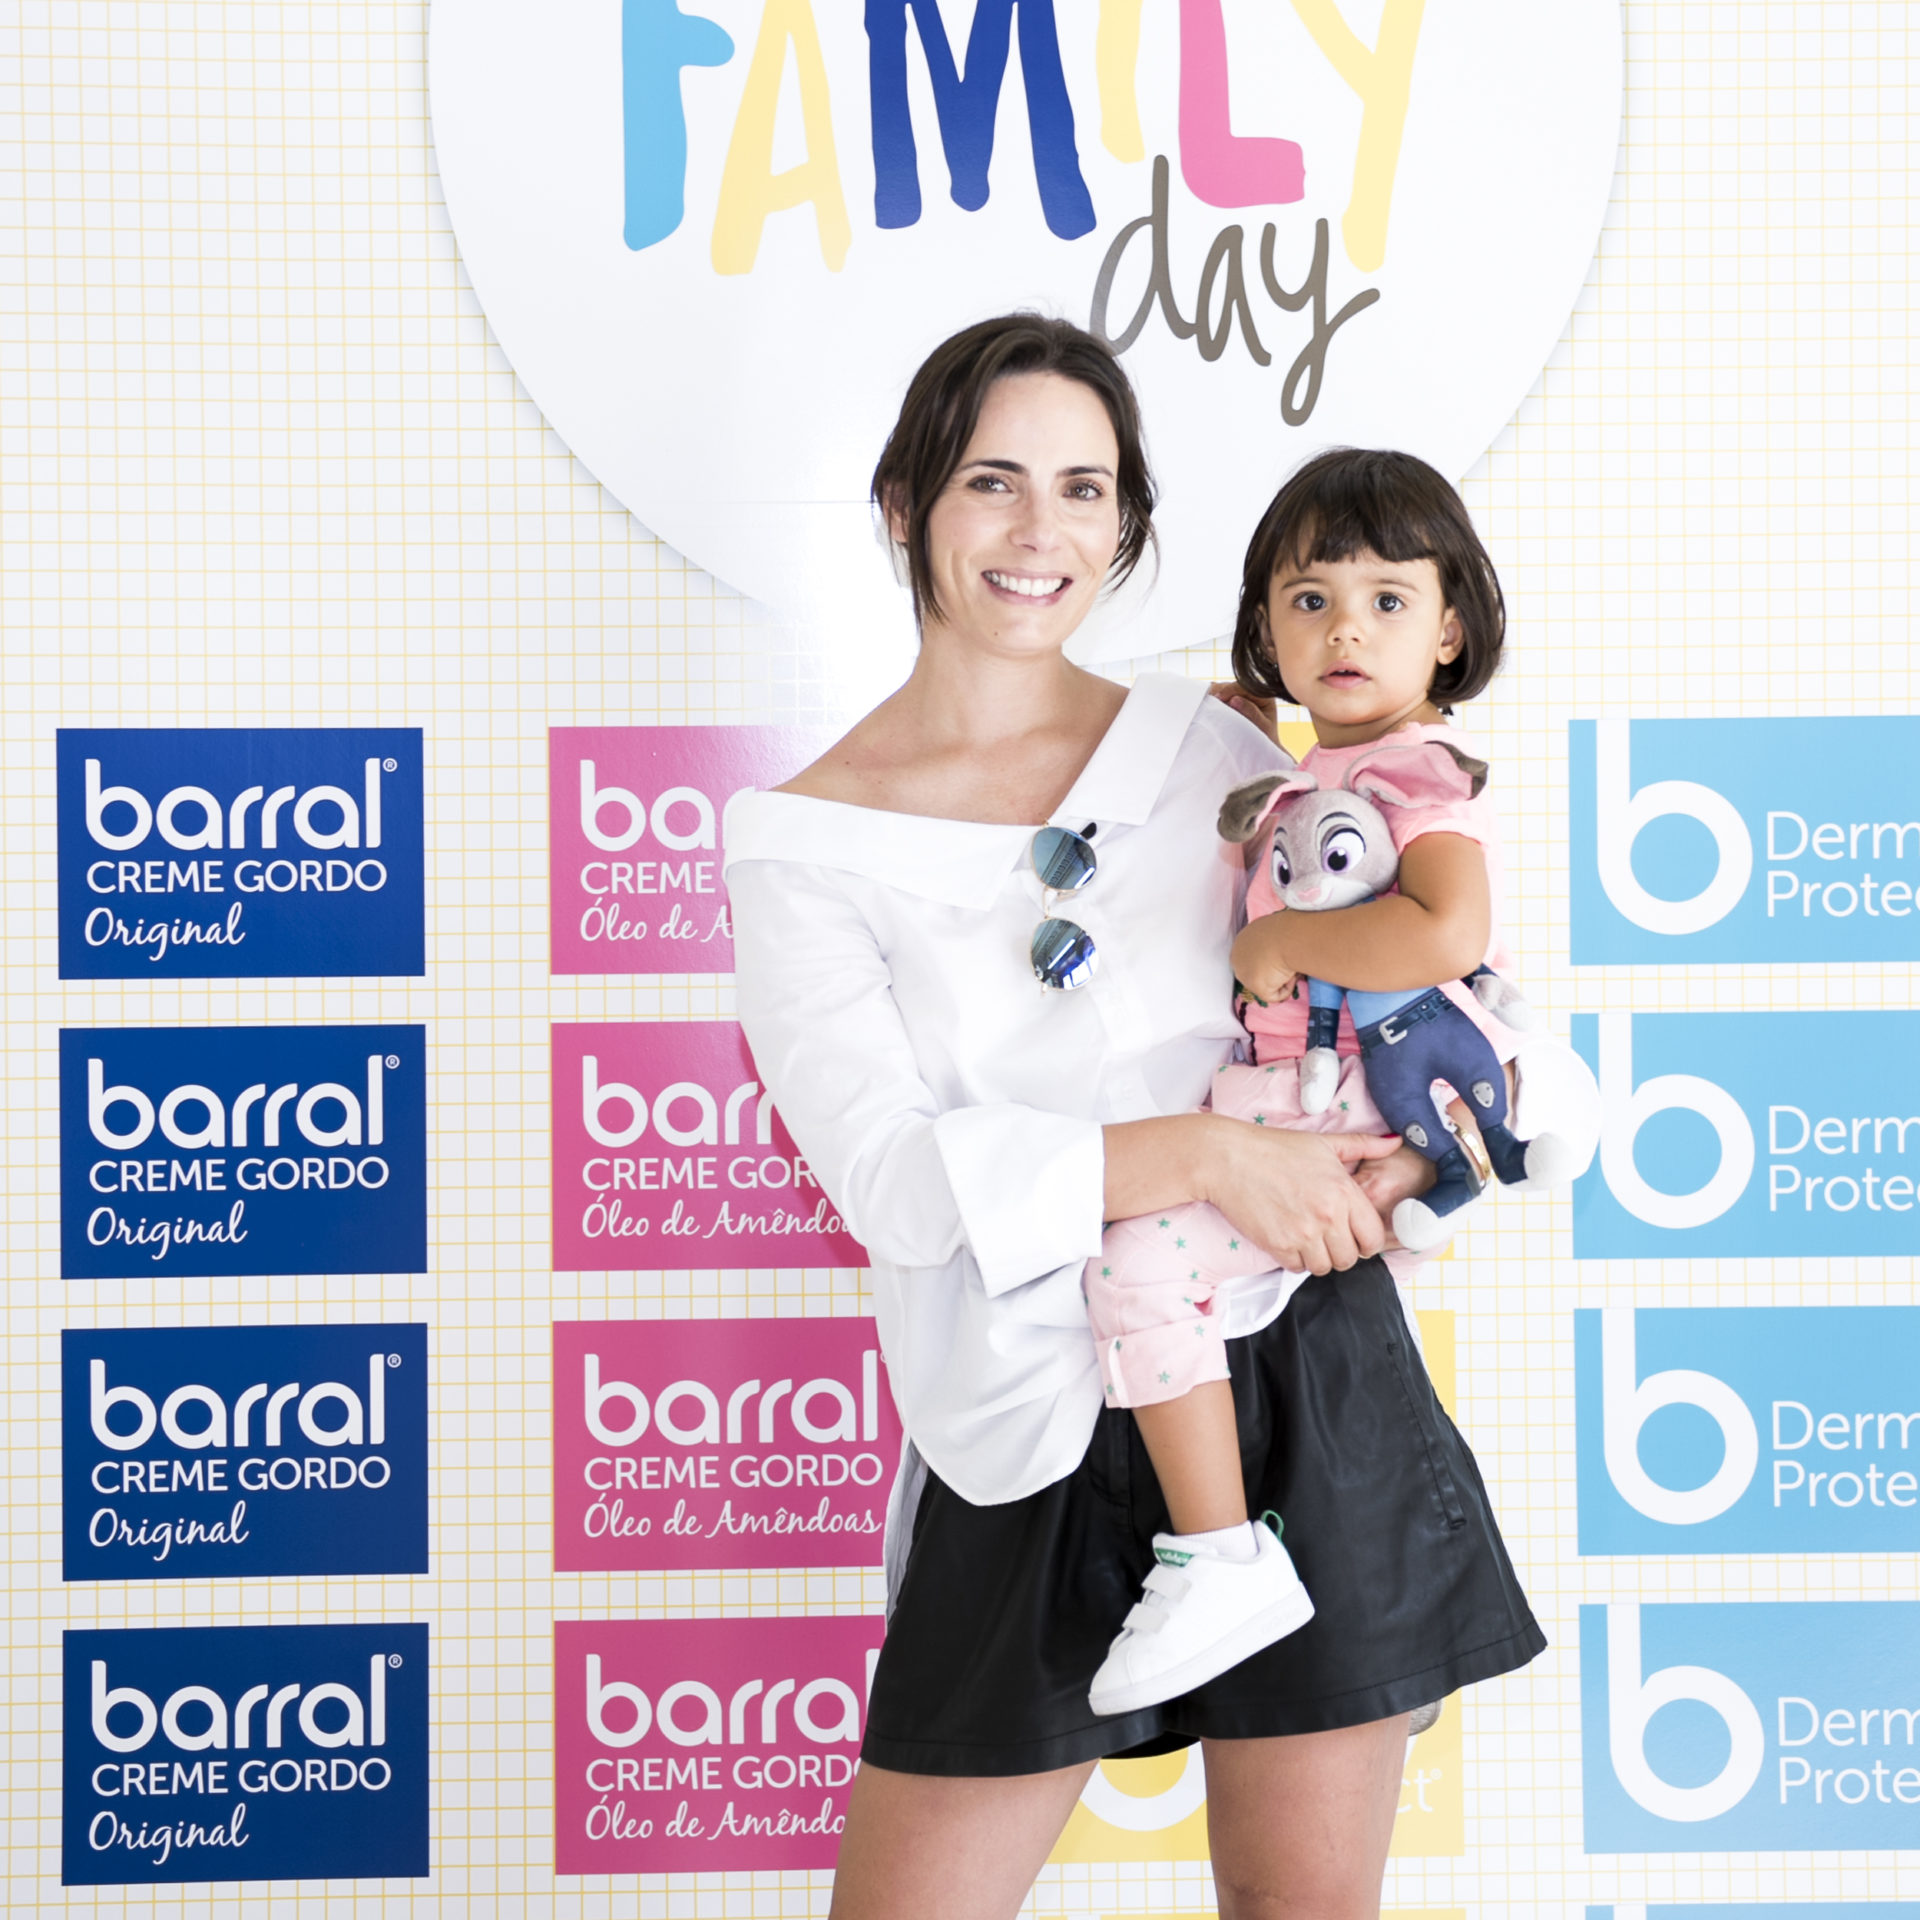 barral_family_day_337